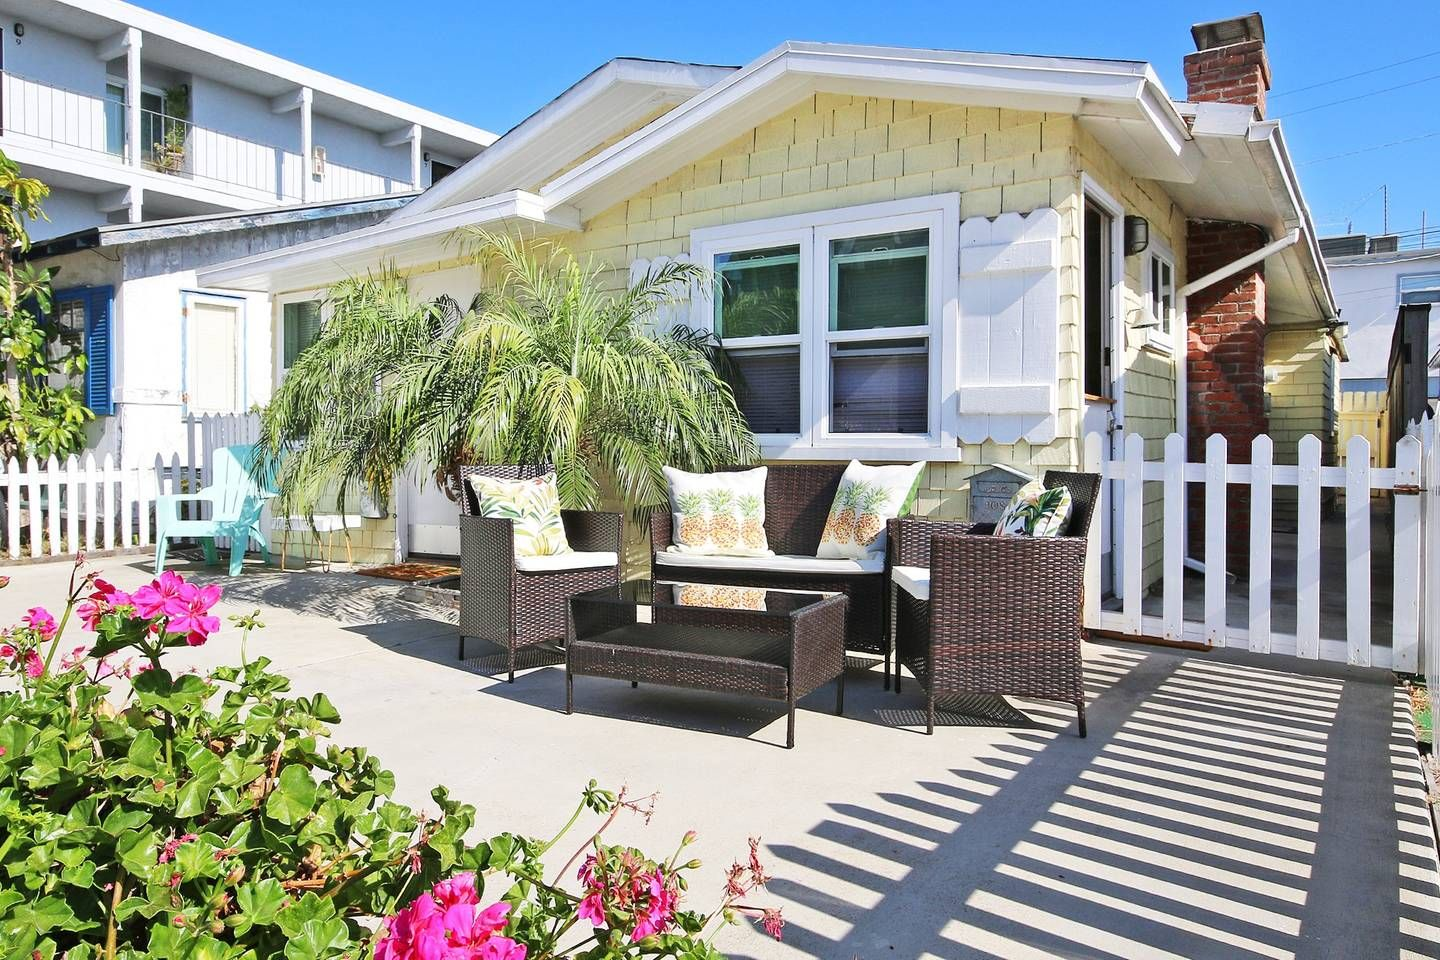 Tiny Houses For Rent In San Diego Airbnb Mission Beach Beach Houses For Rent California Beach House Beach Cottage Decor